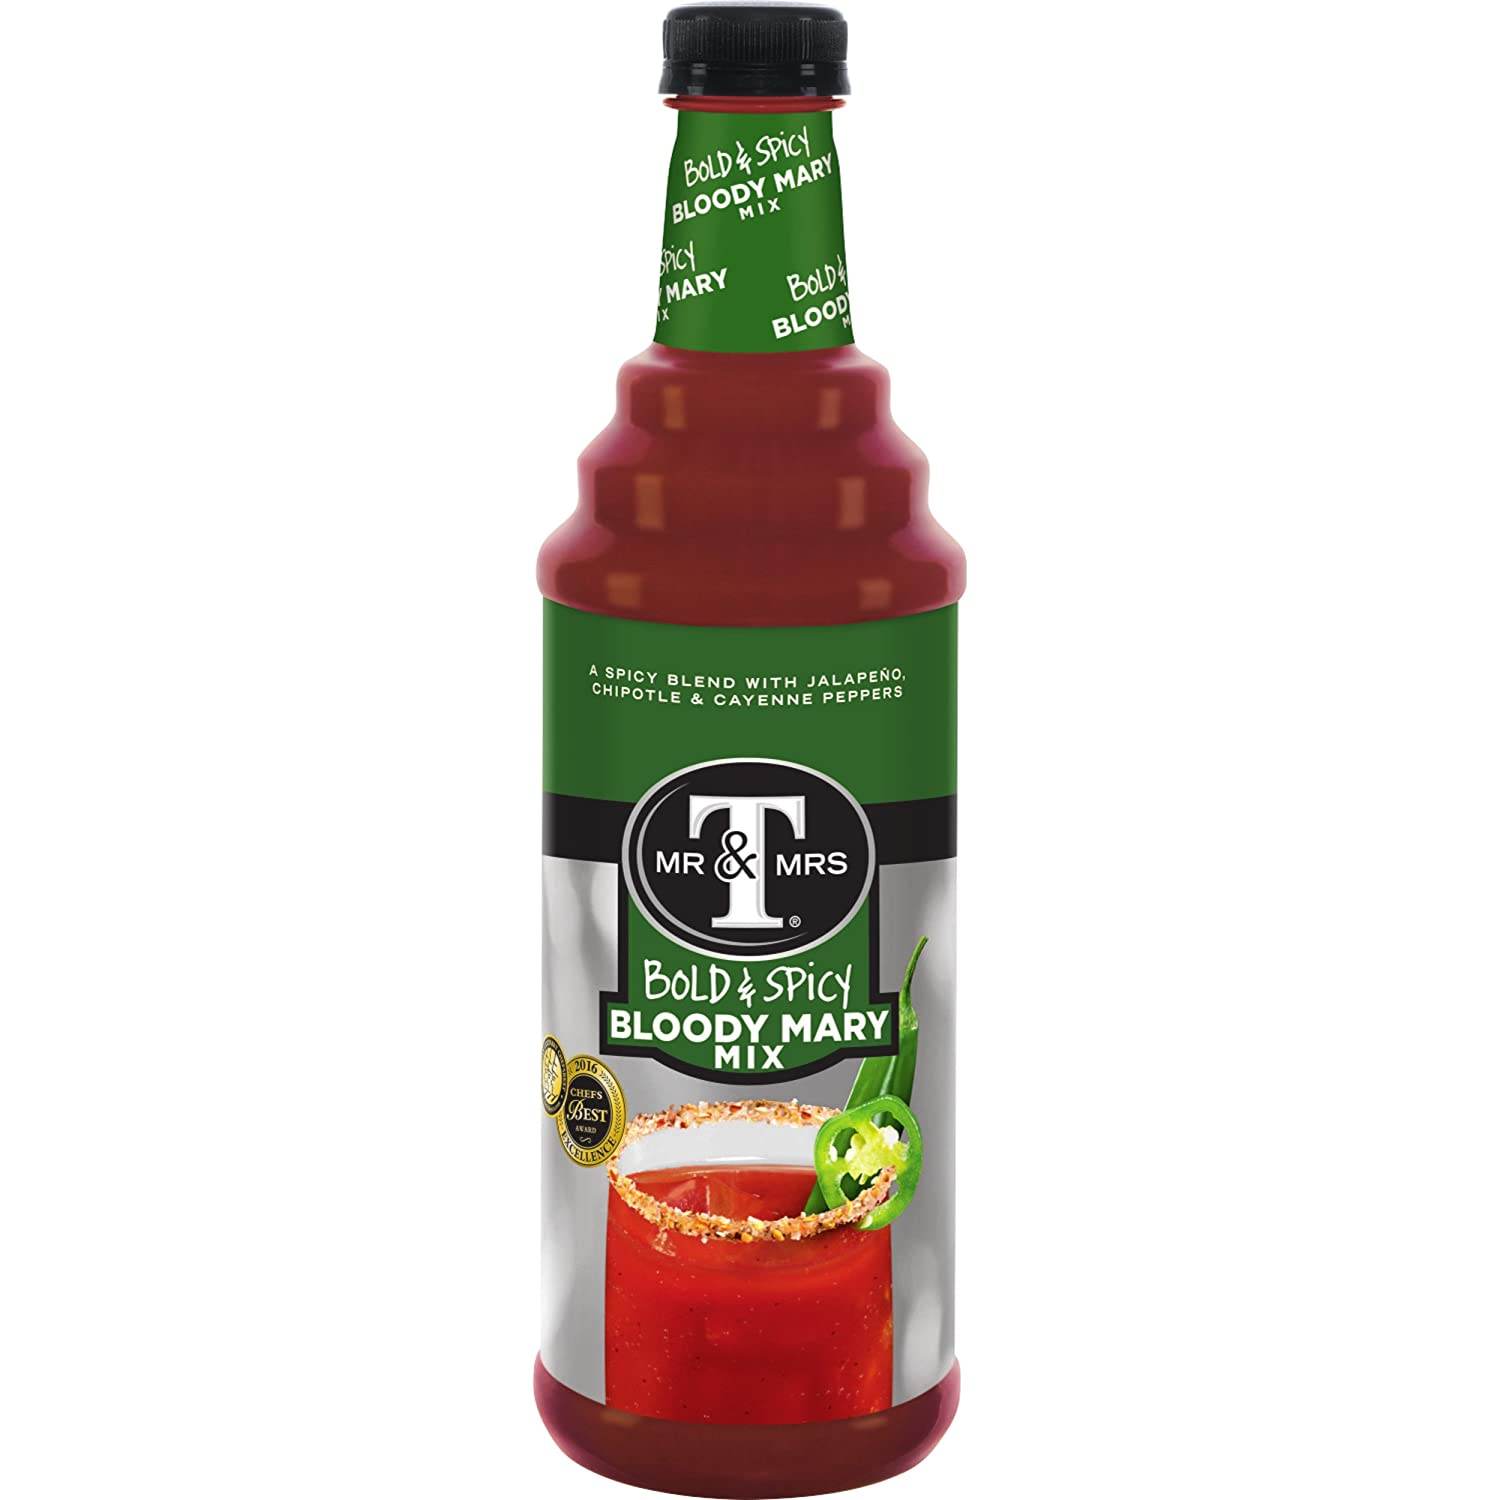 Mr & Mrs T Bold & Spicy Bloody Mary Mix, 1 L bottles (Pack of 12)